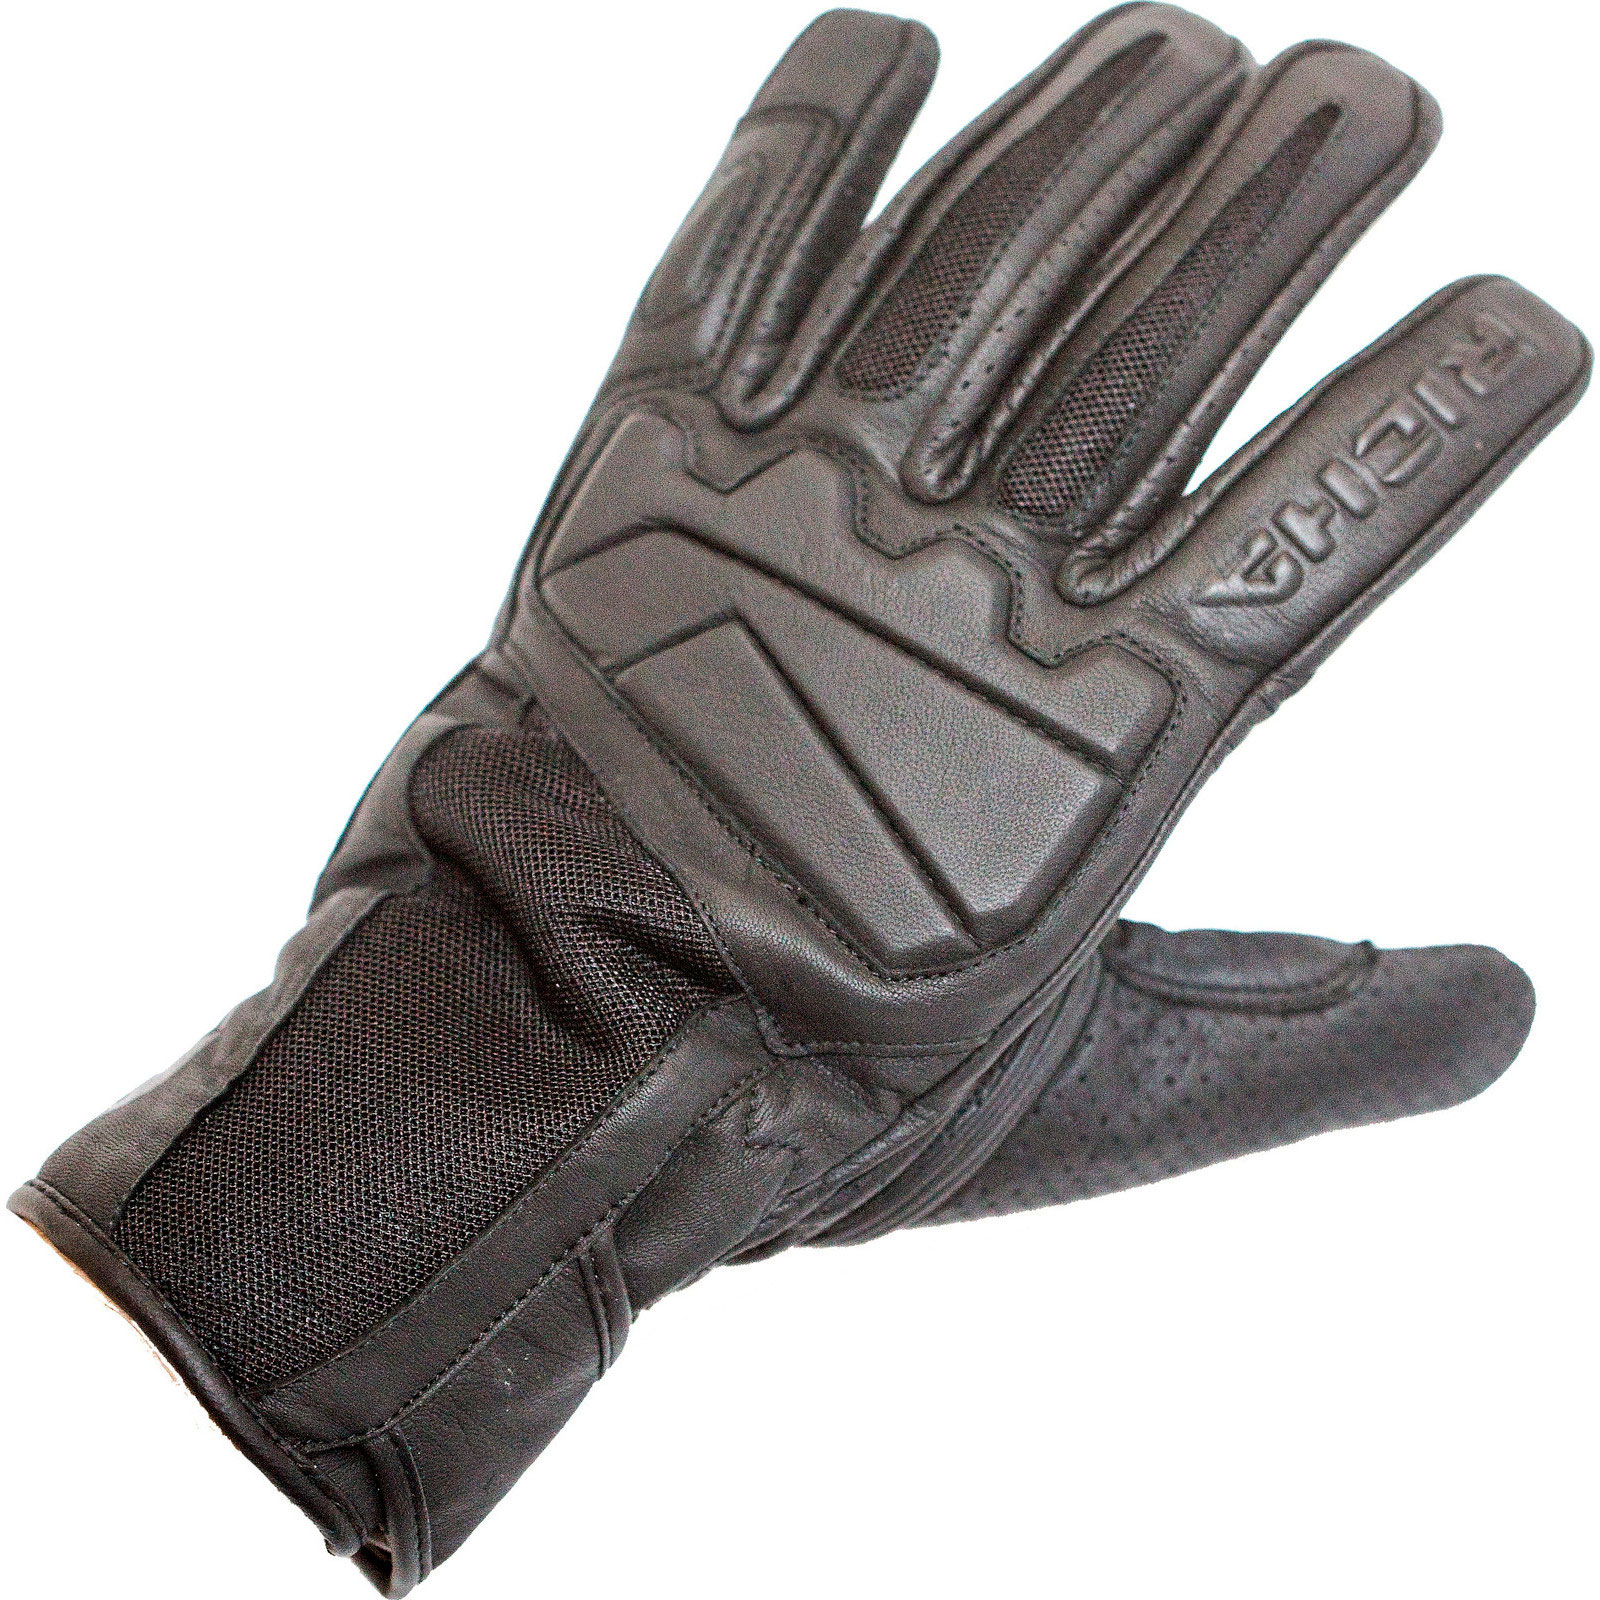 Motorcycle gloves richa - Richa Breeze Leather Motorcycle Gloves Mens Perforated Mid